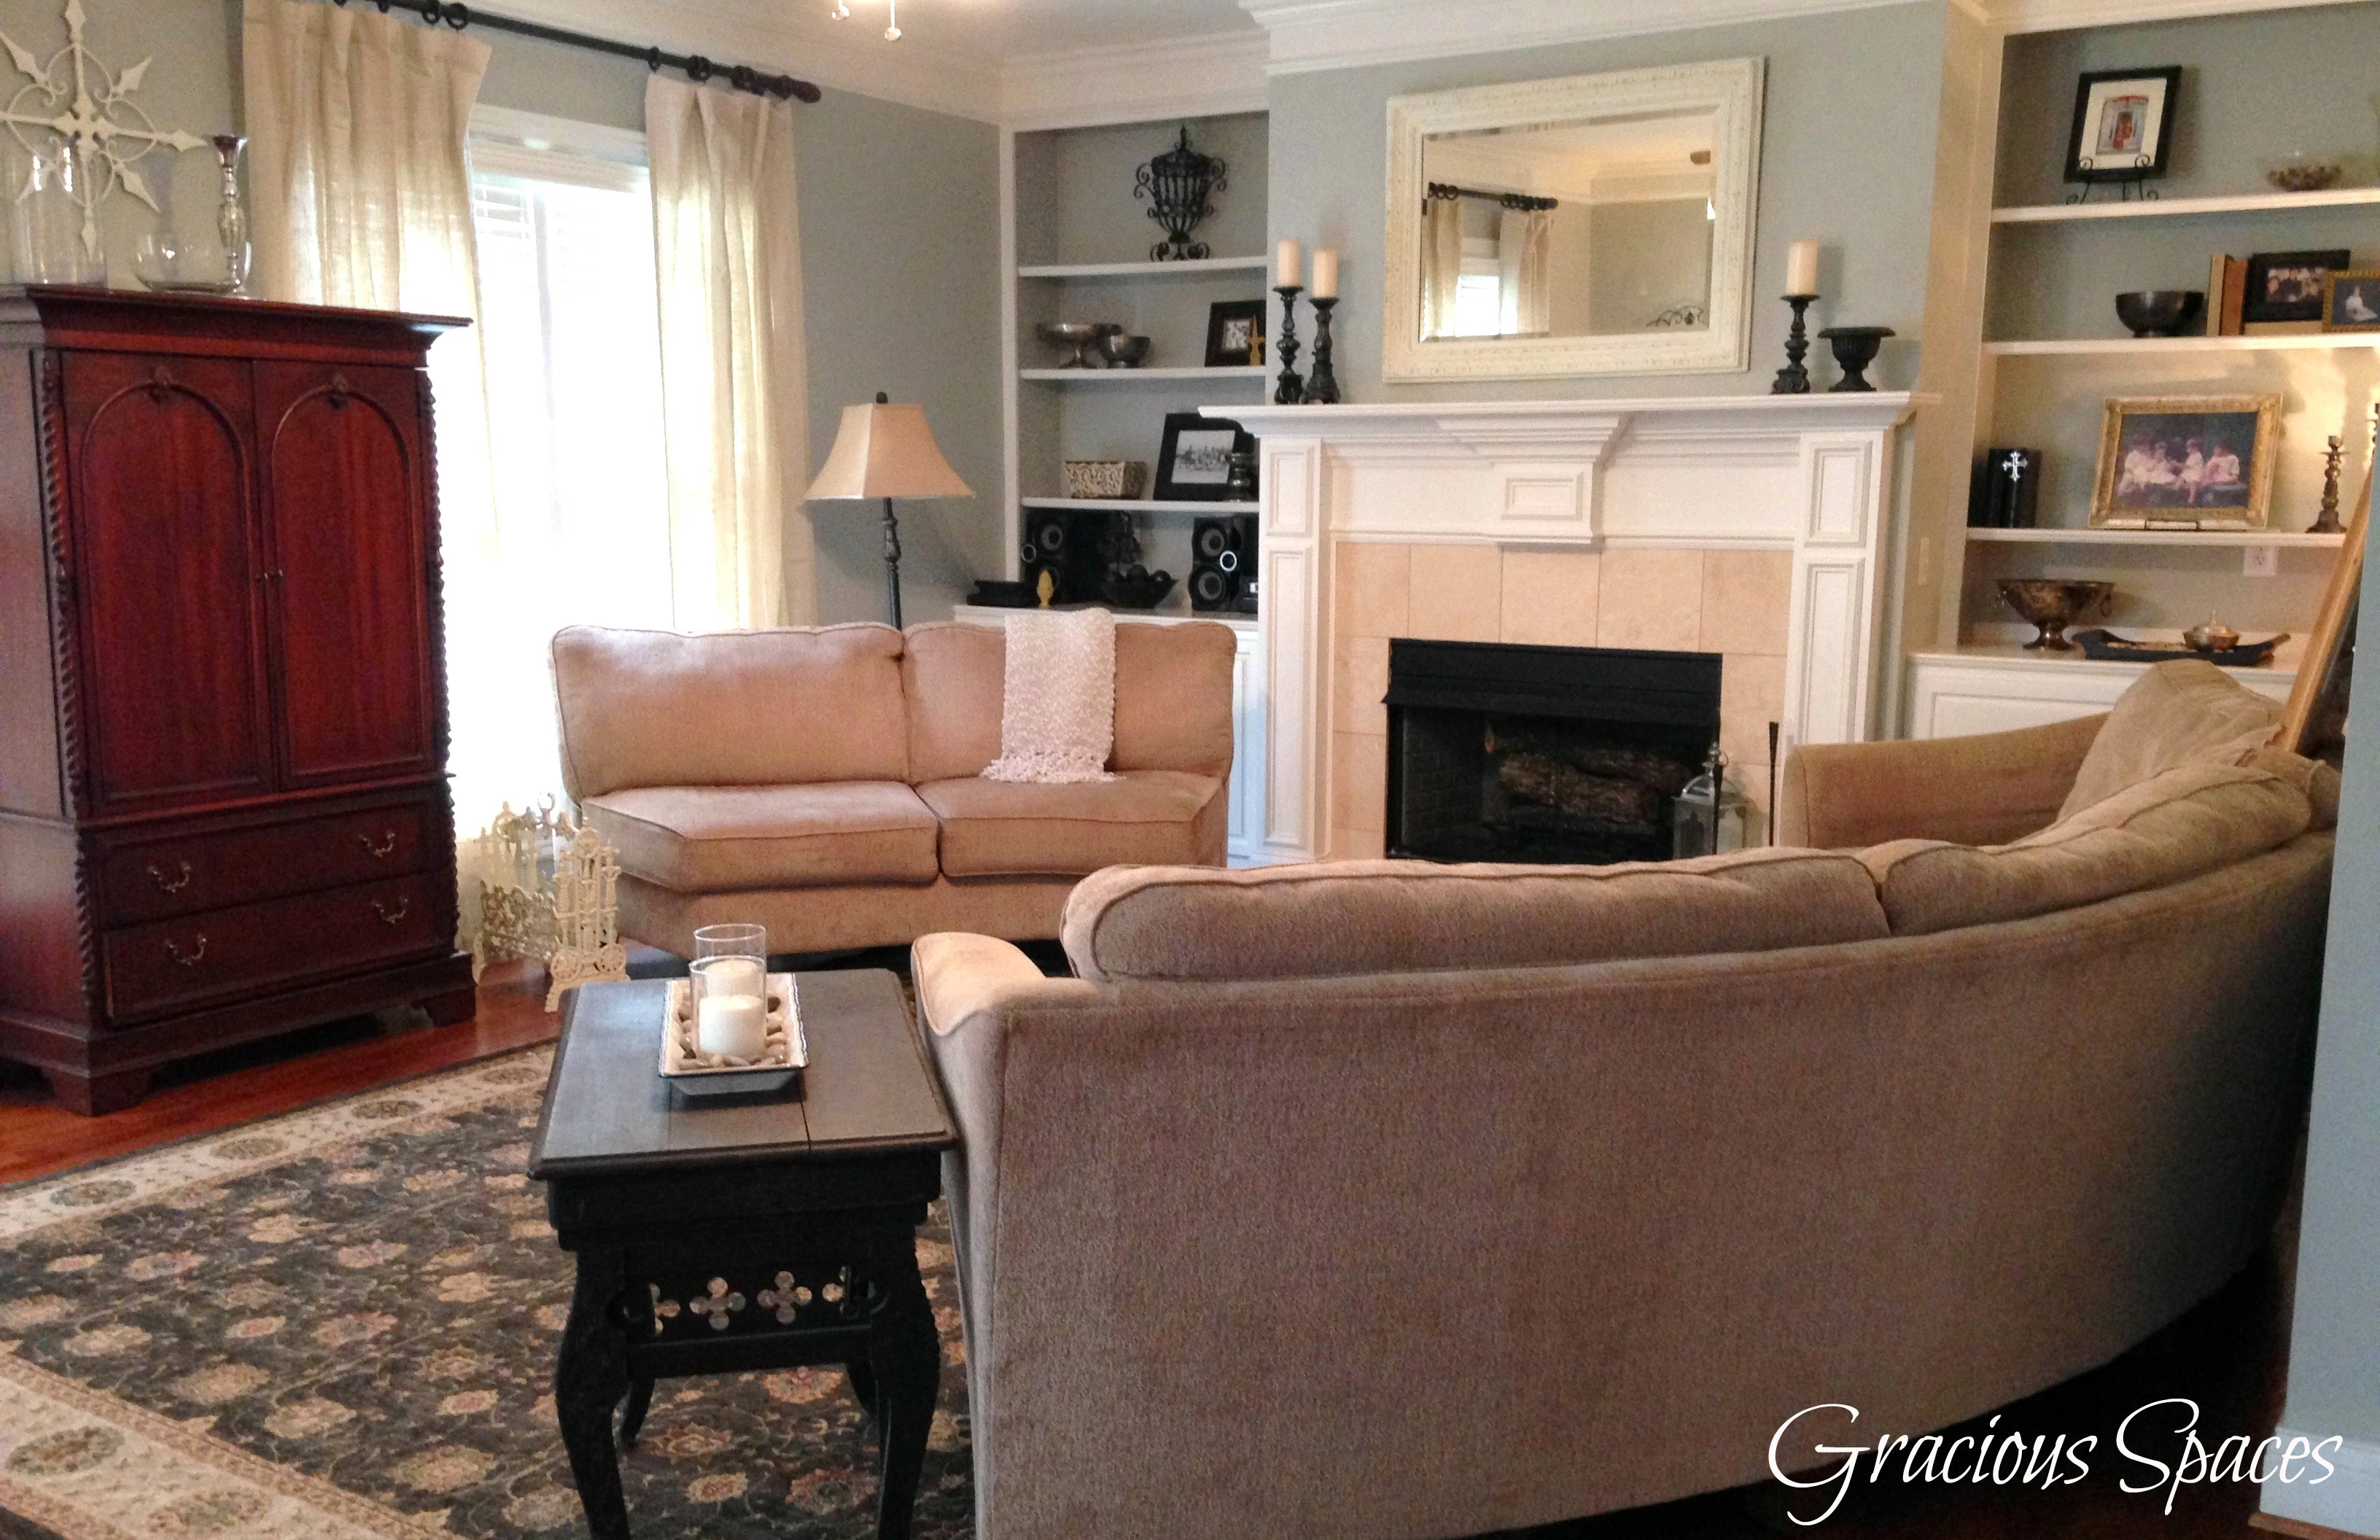 Gracious-Spaces-Interior-Design-Tennessee-Living-Room